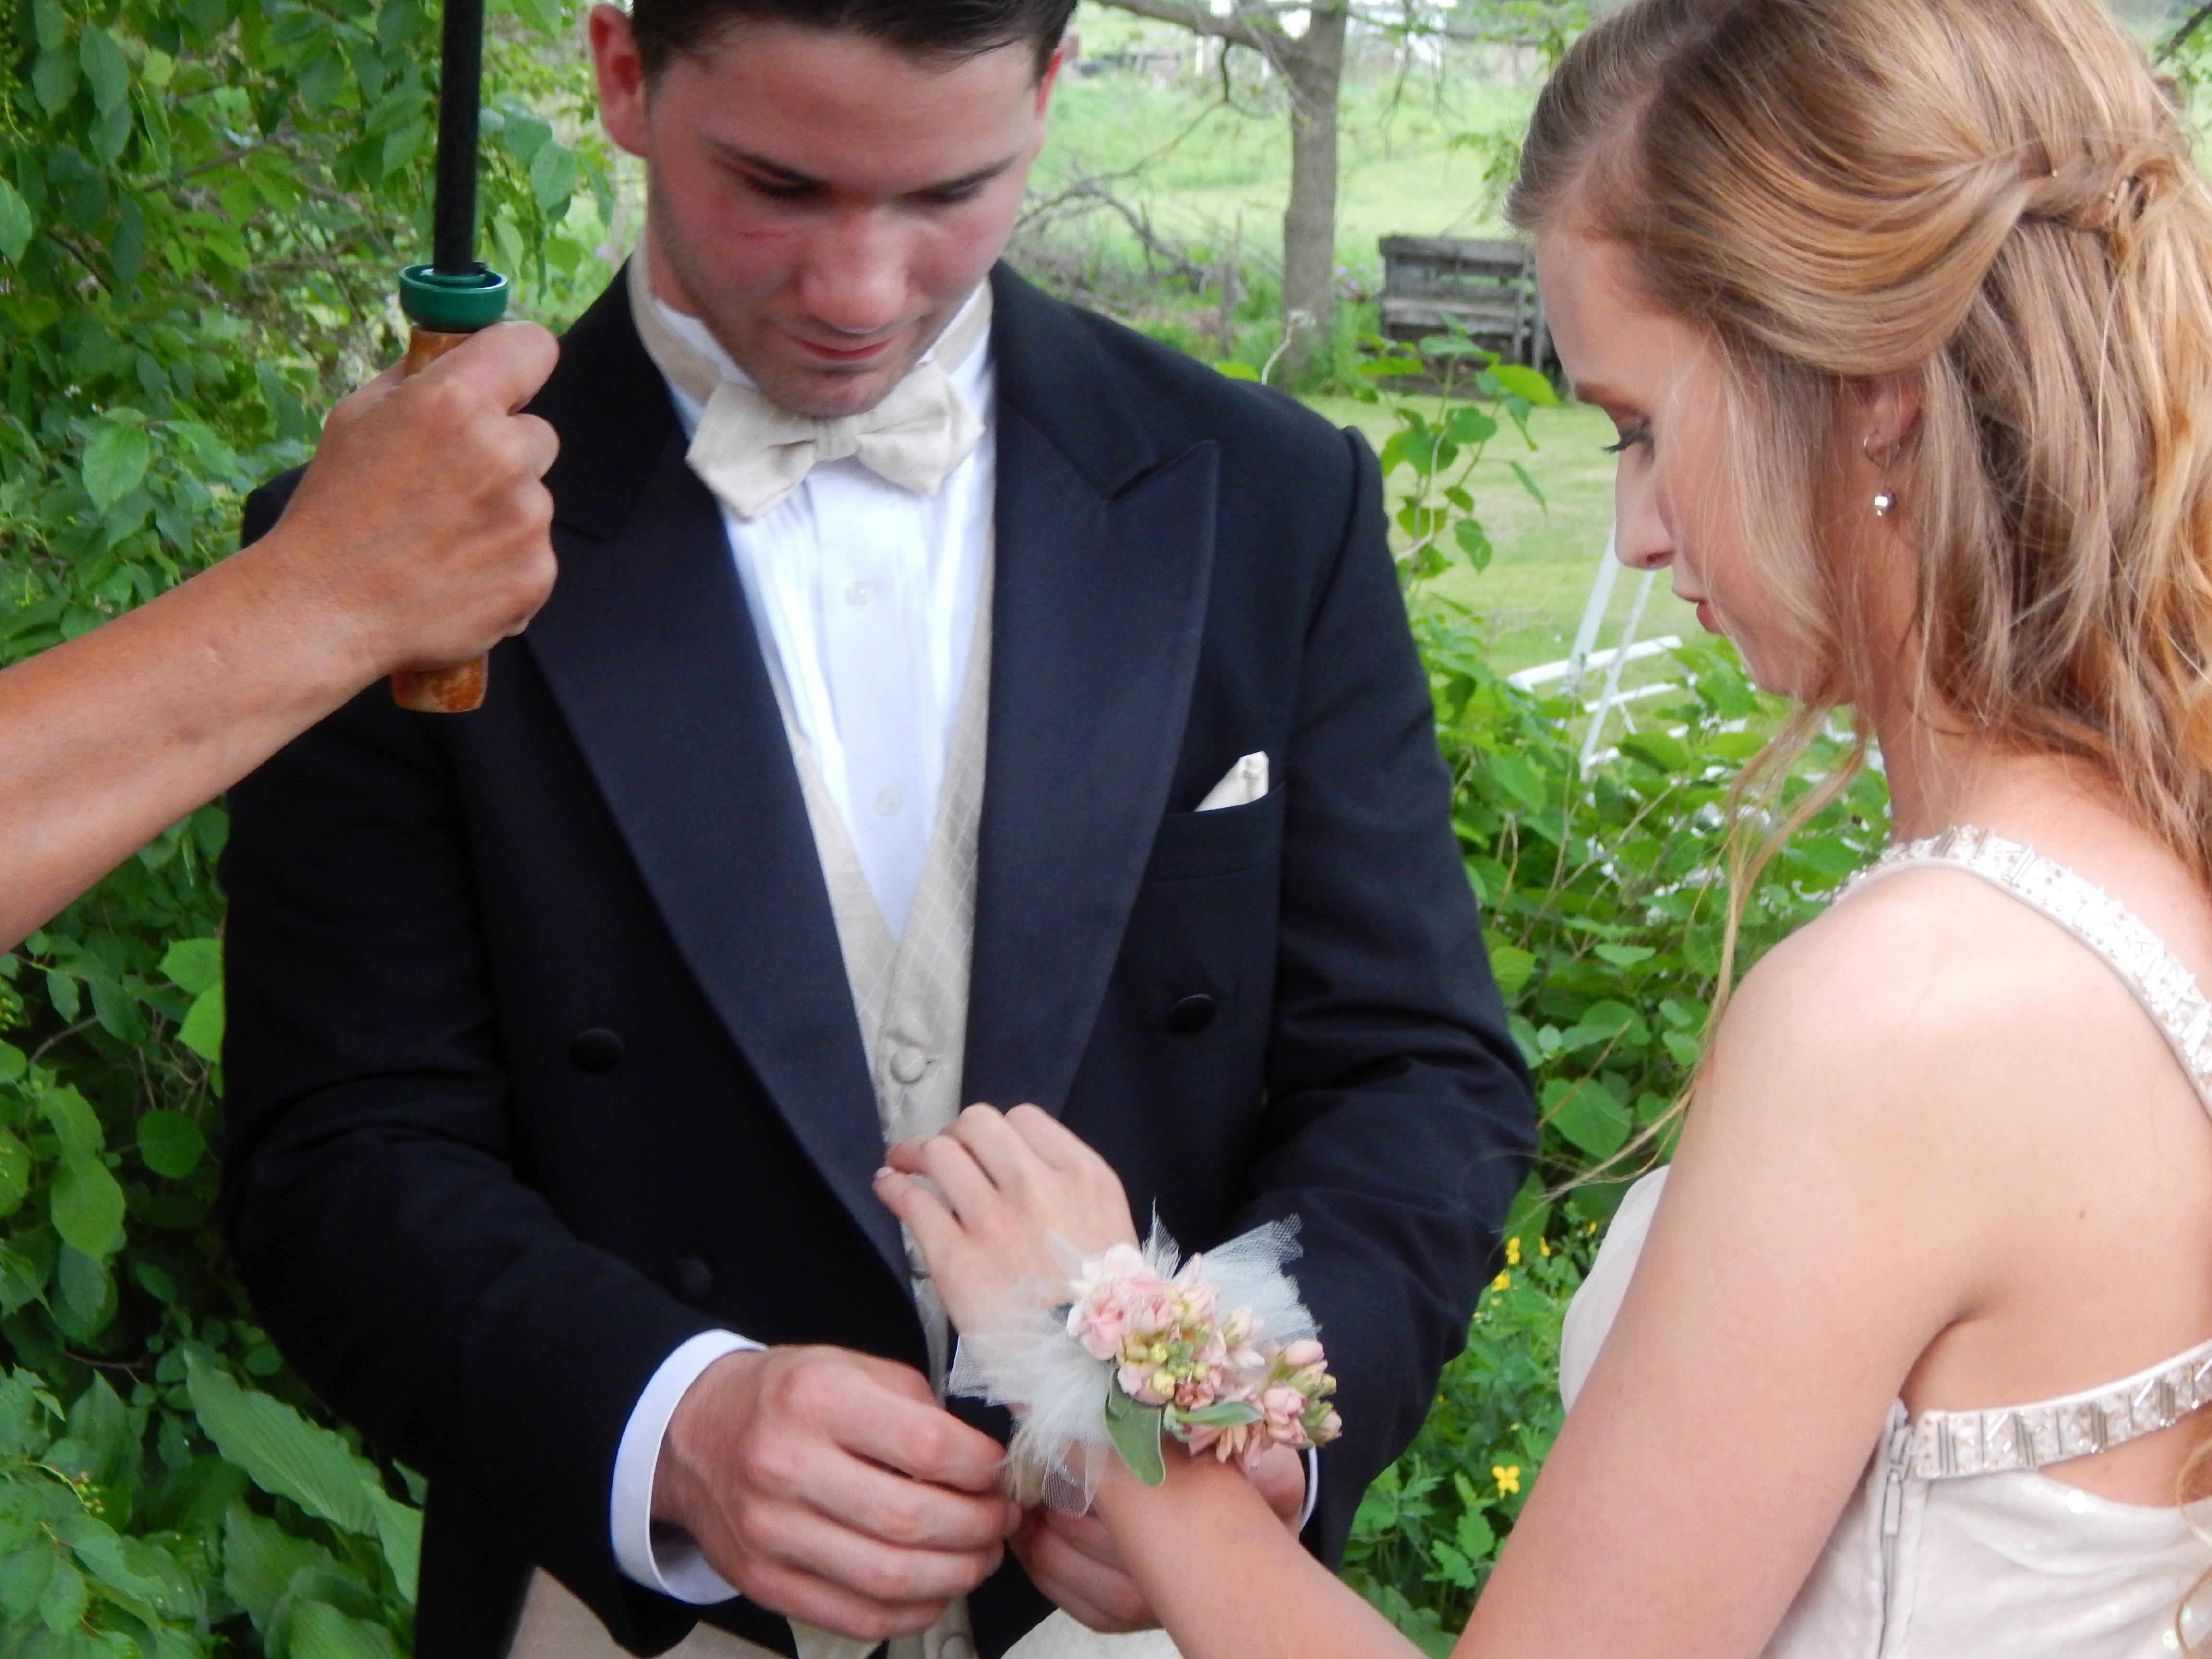 Abby's corsage